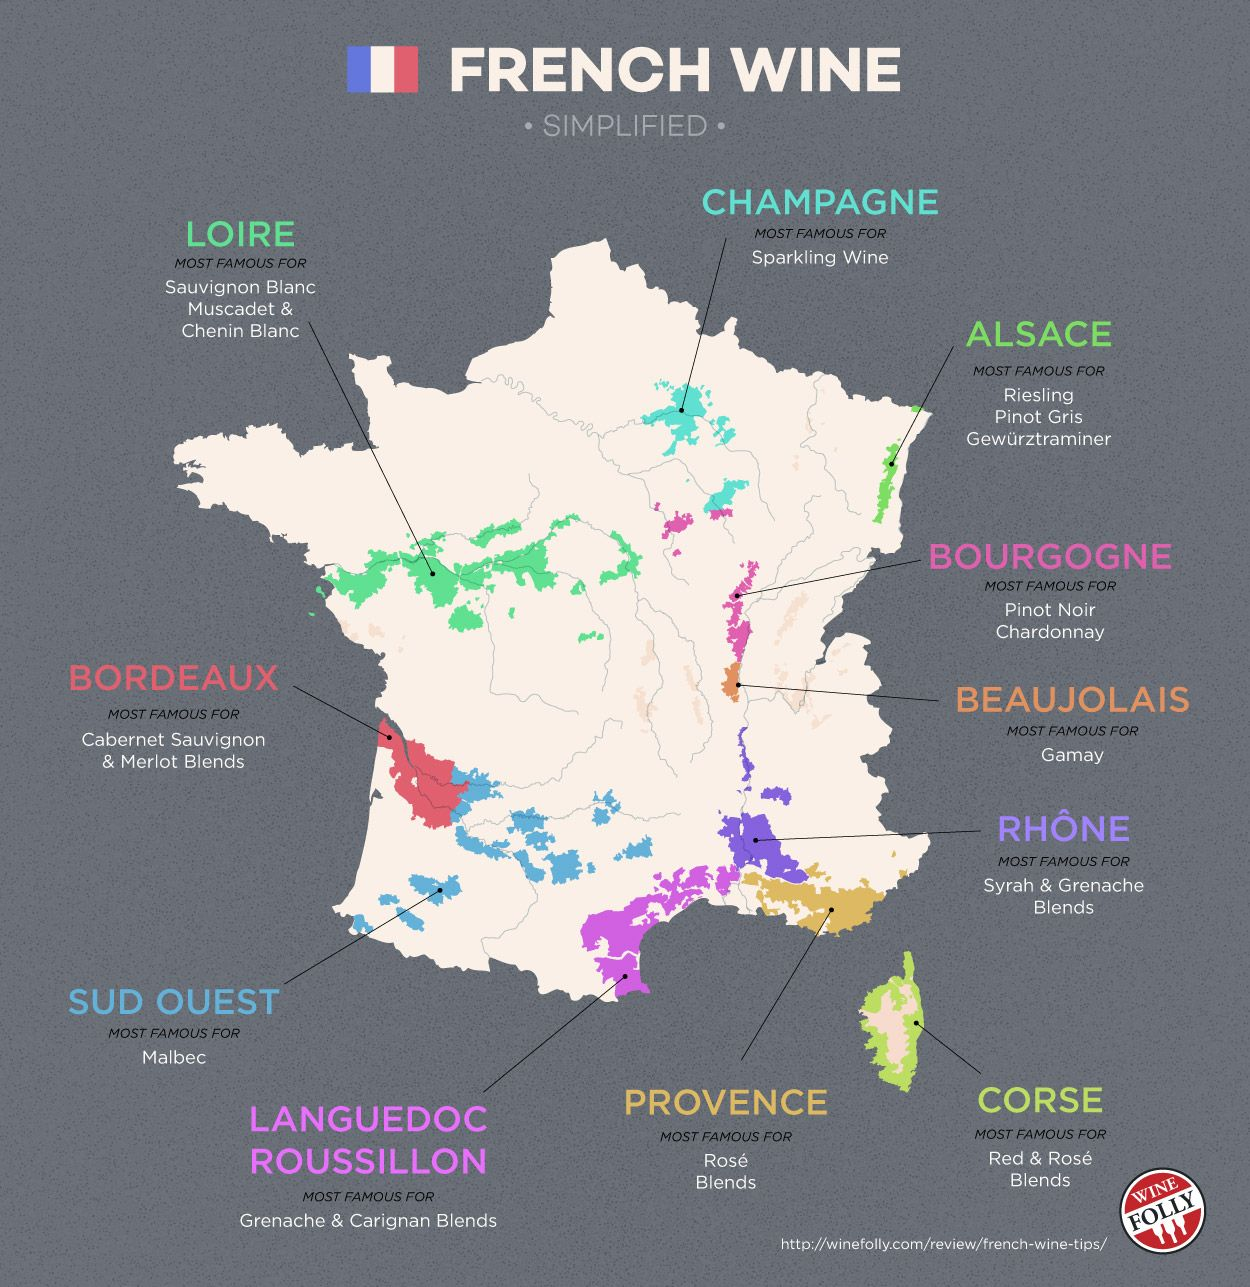 Explore French wine with a simple map. http://winefolly.com/review/french-wine-tips/